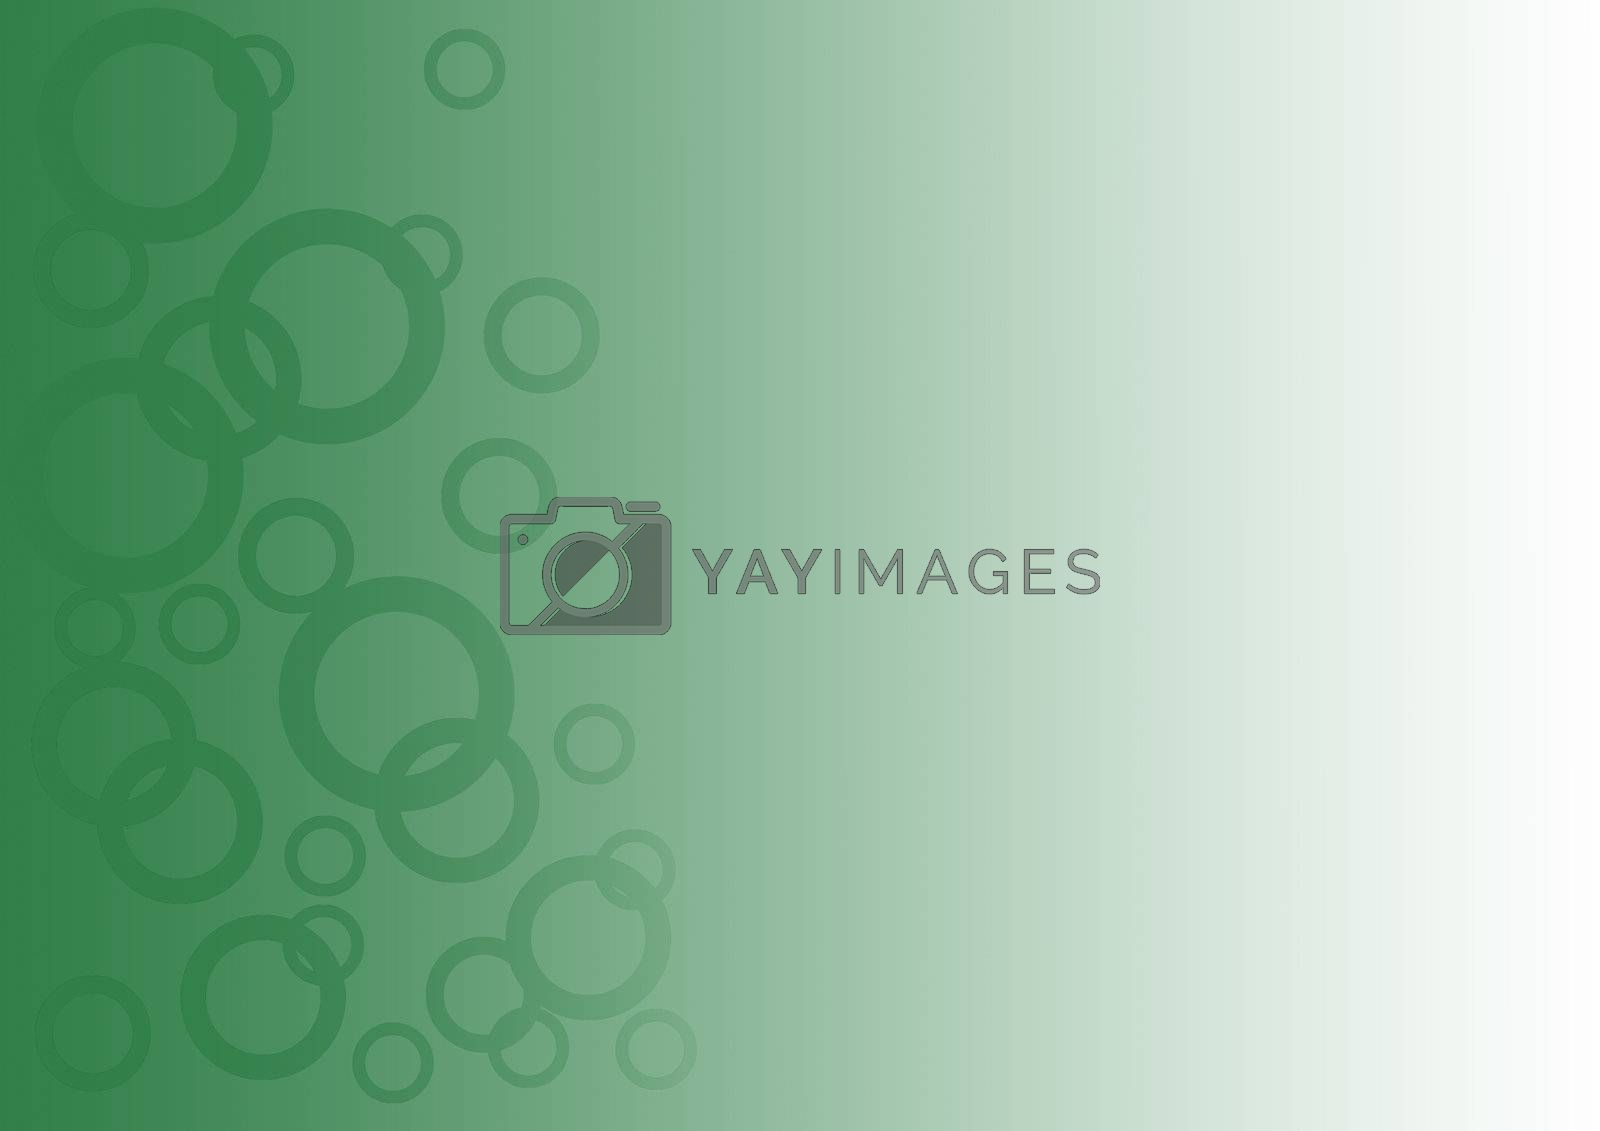 Background with Circles by werg